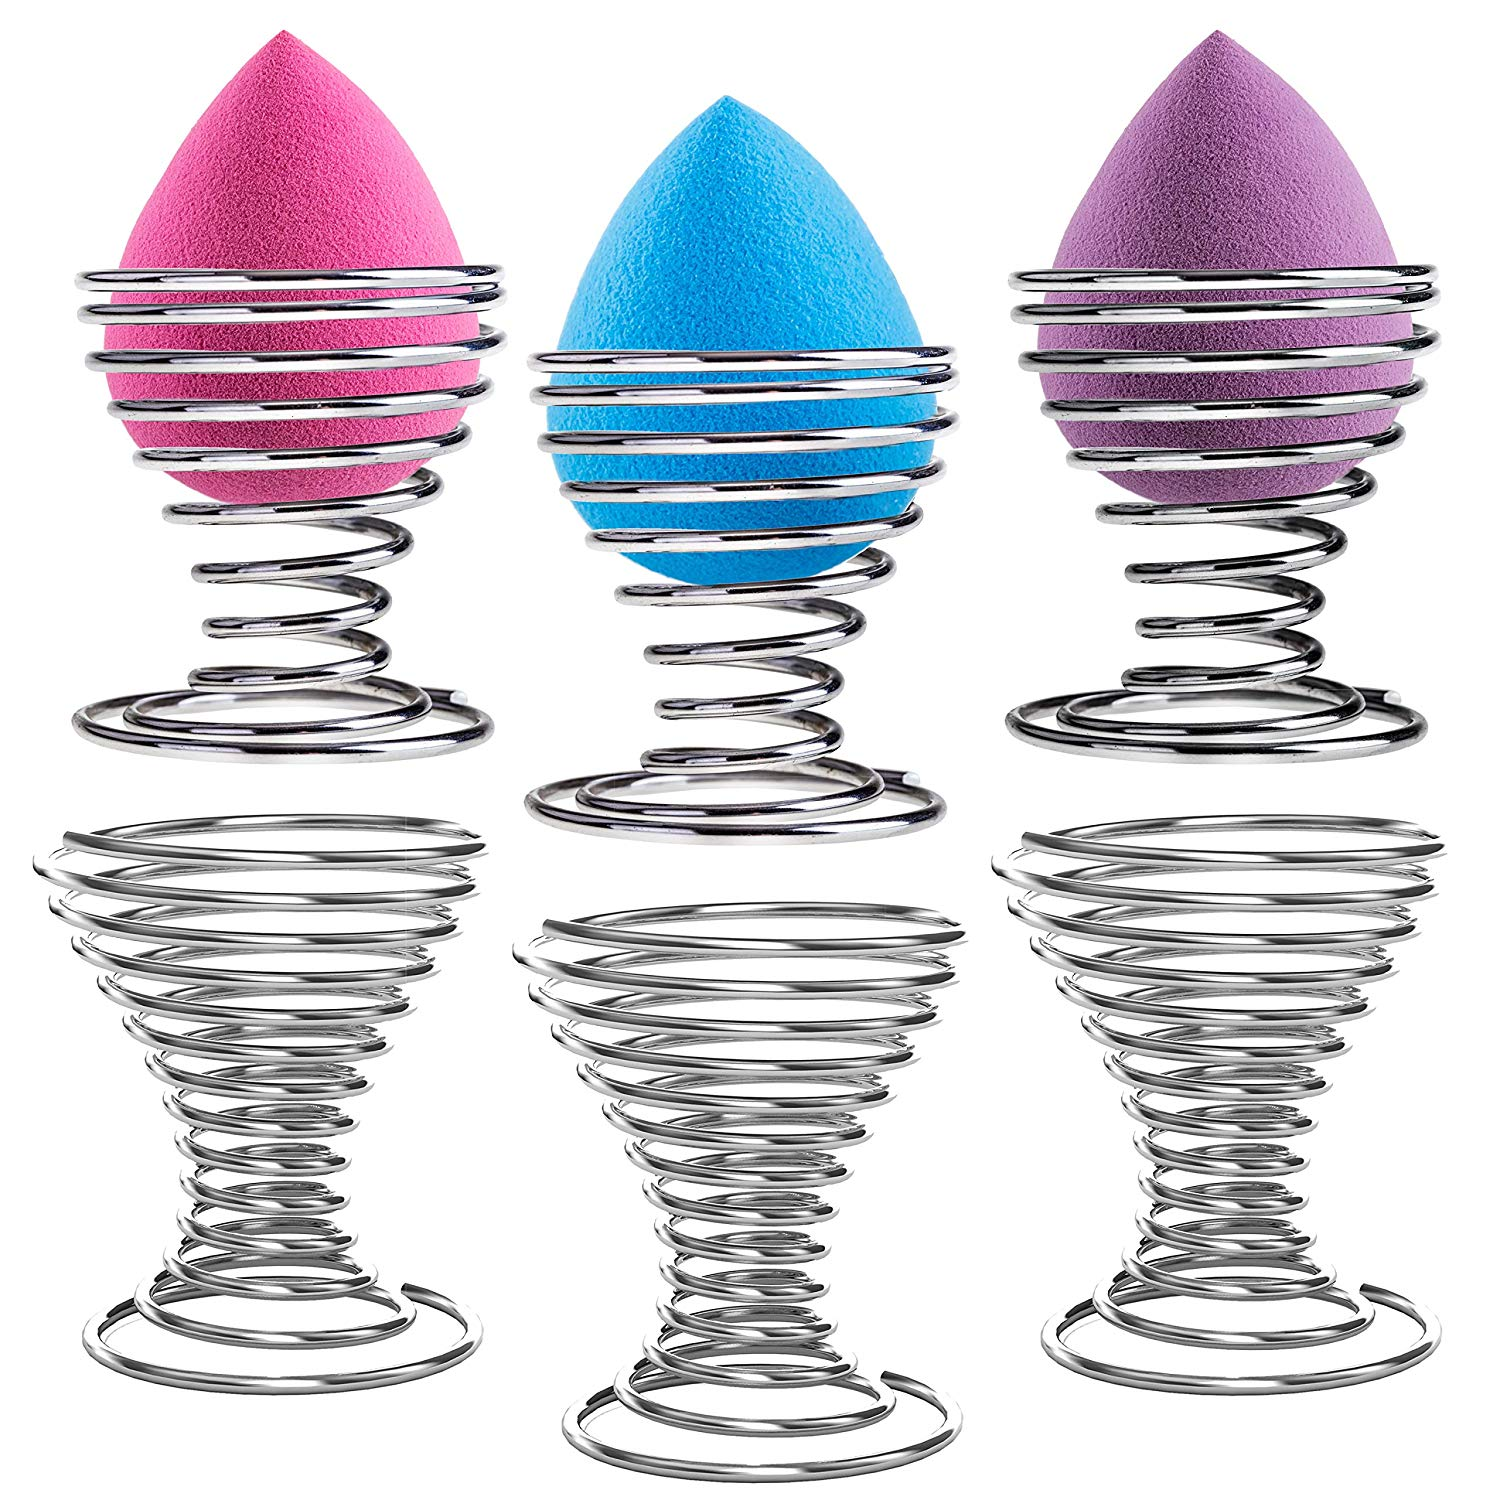 Chrome-Plated Steel Spring Wire Makeup Sponge Beauty Blender Holders, Set of 6